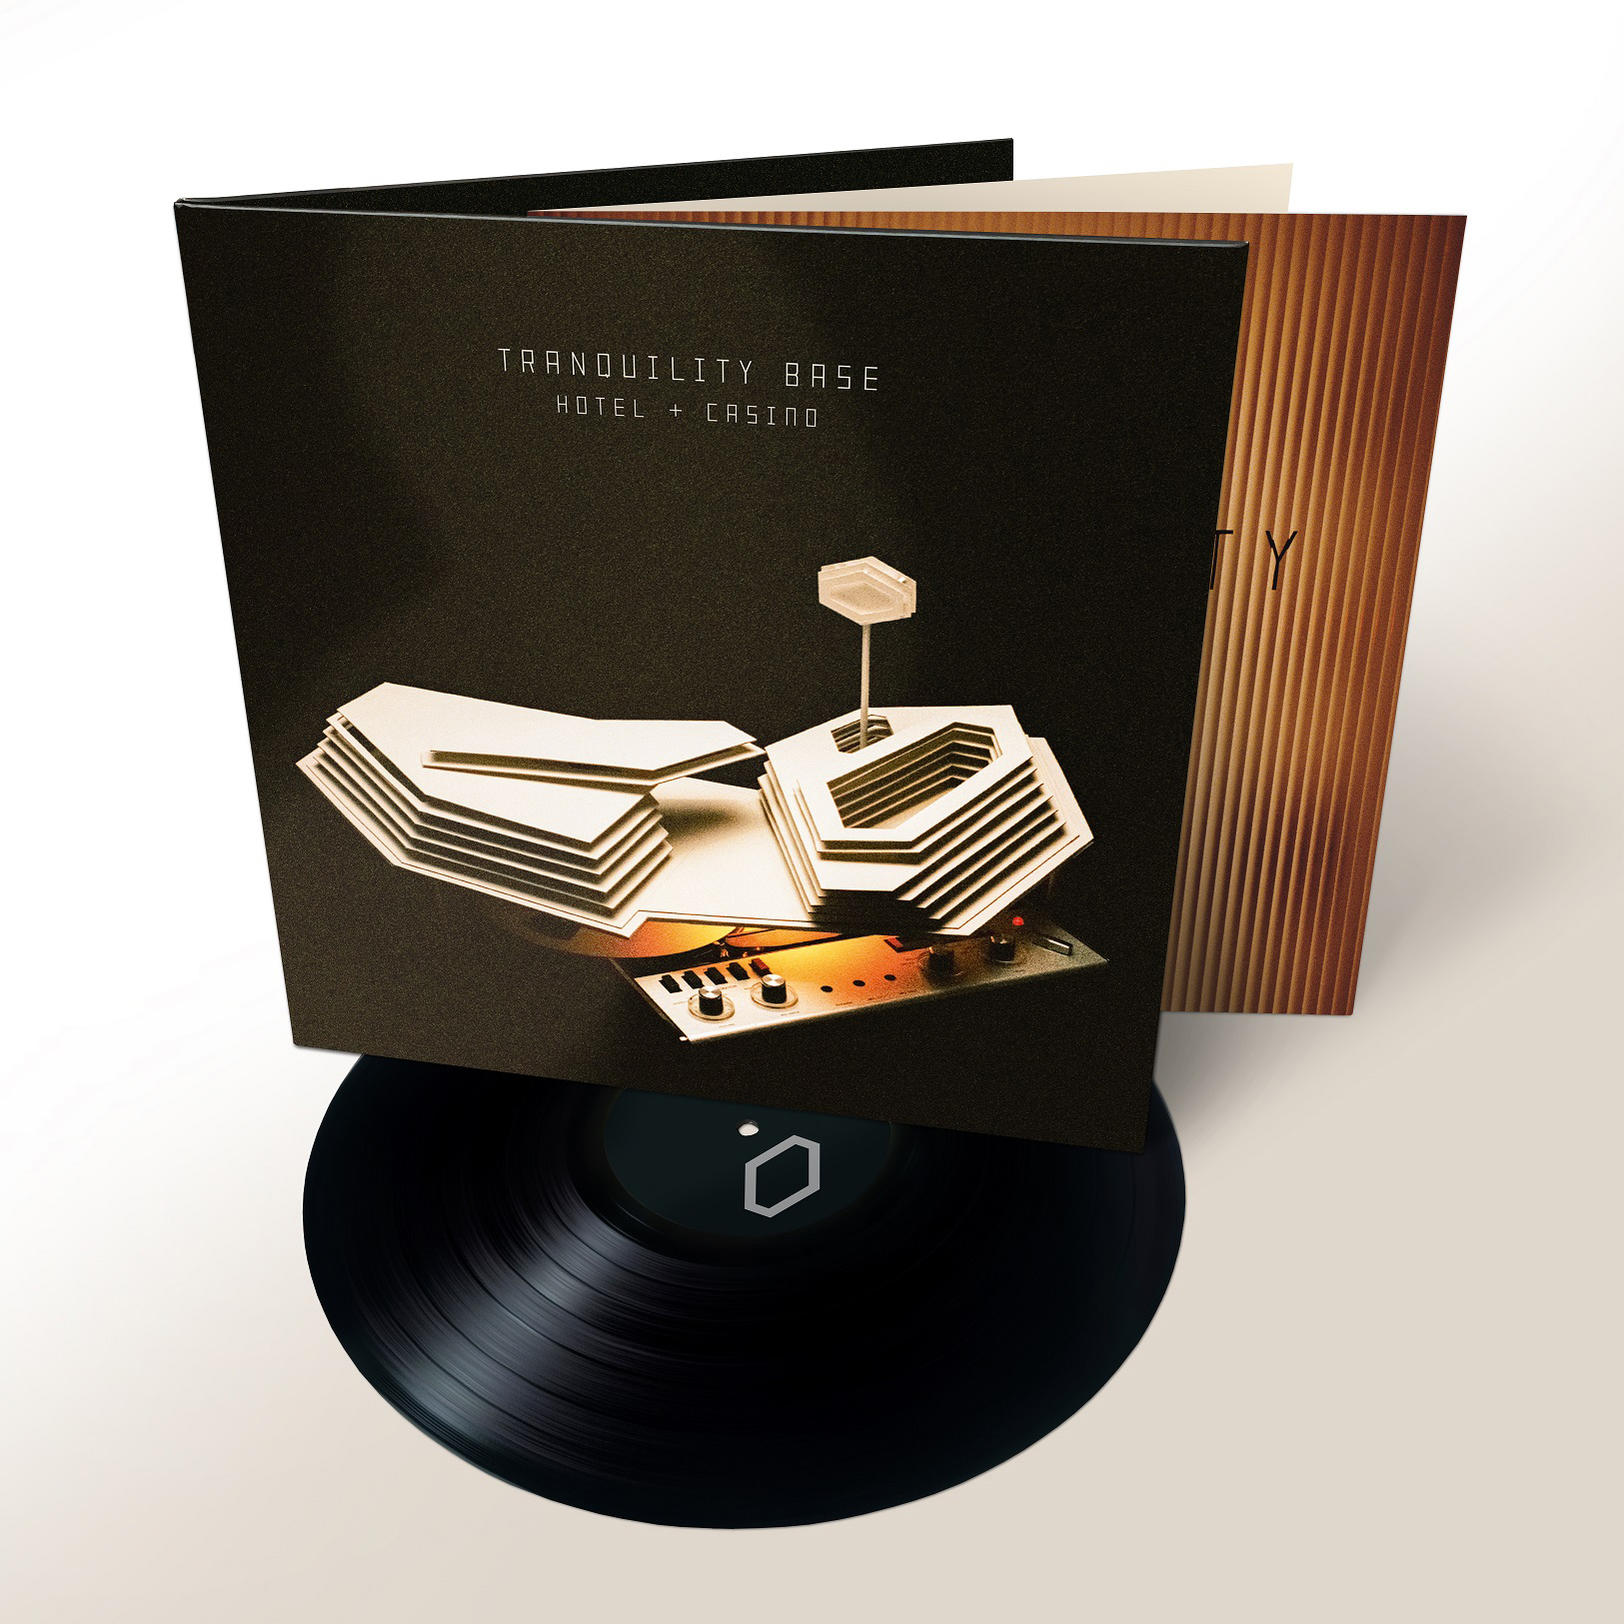 TRANQUILITY BASE HOTEL & CASINO (LP)